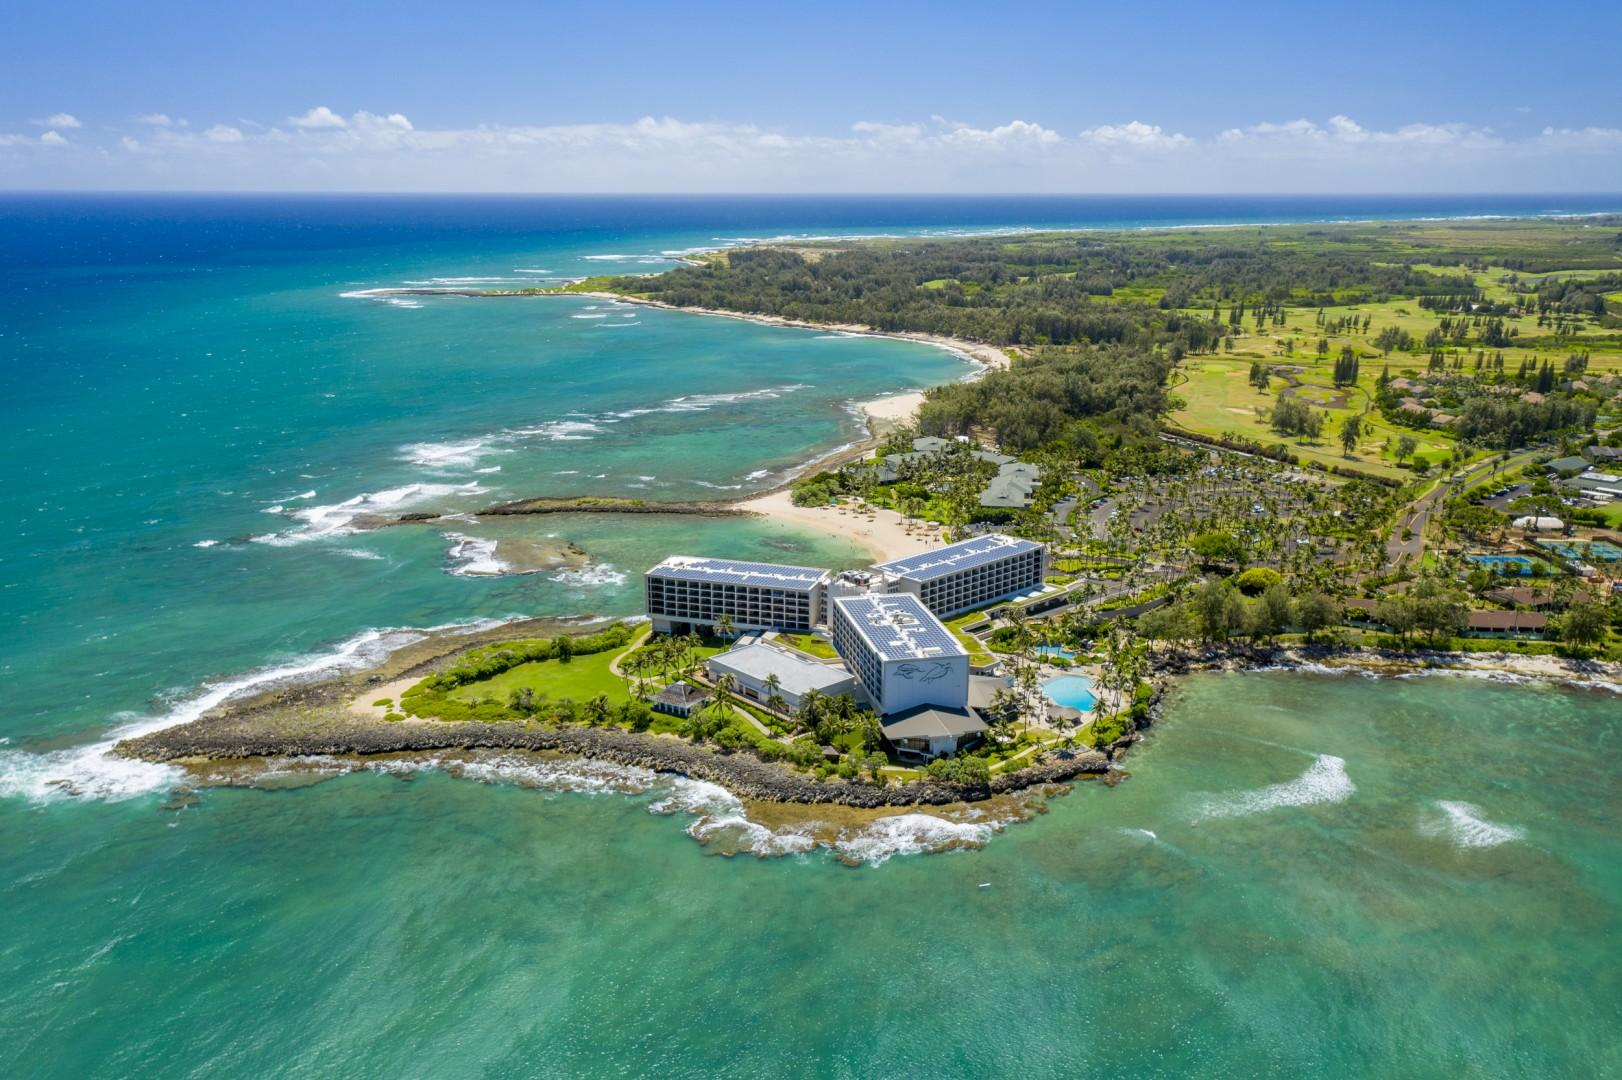 View of the adjacent Turtle Bay Resort within walking distance of the Villas.  Turtle Bay Resort has great bars and restaurants that are open to the public.